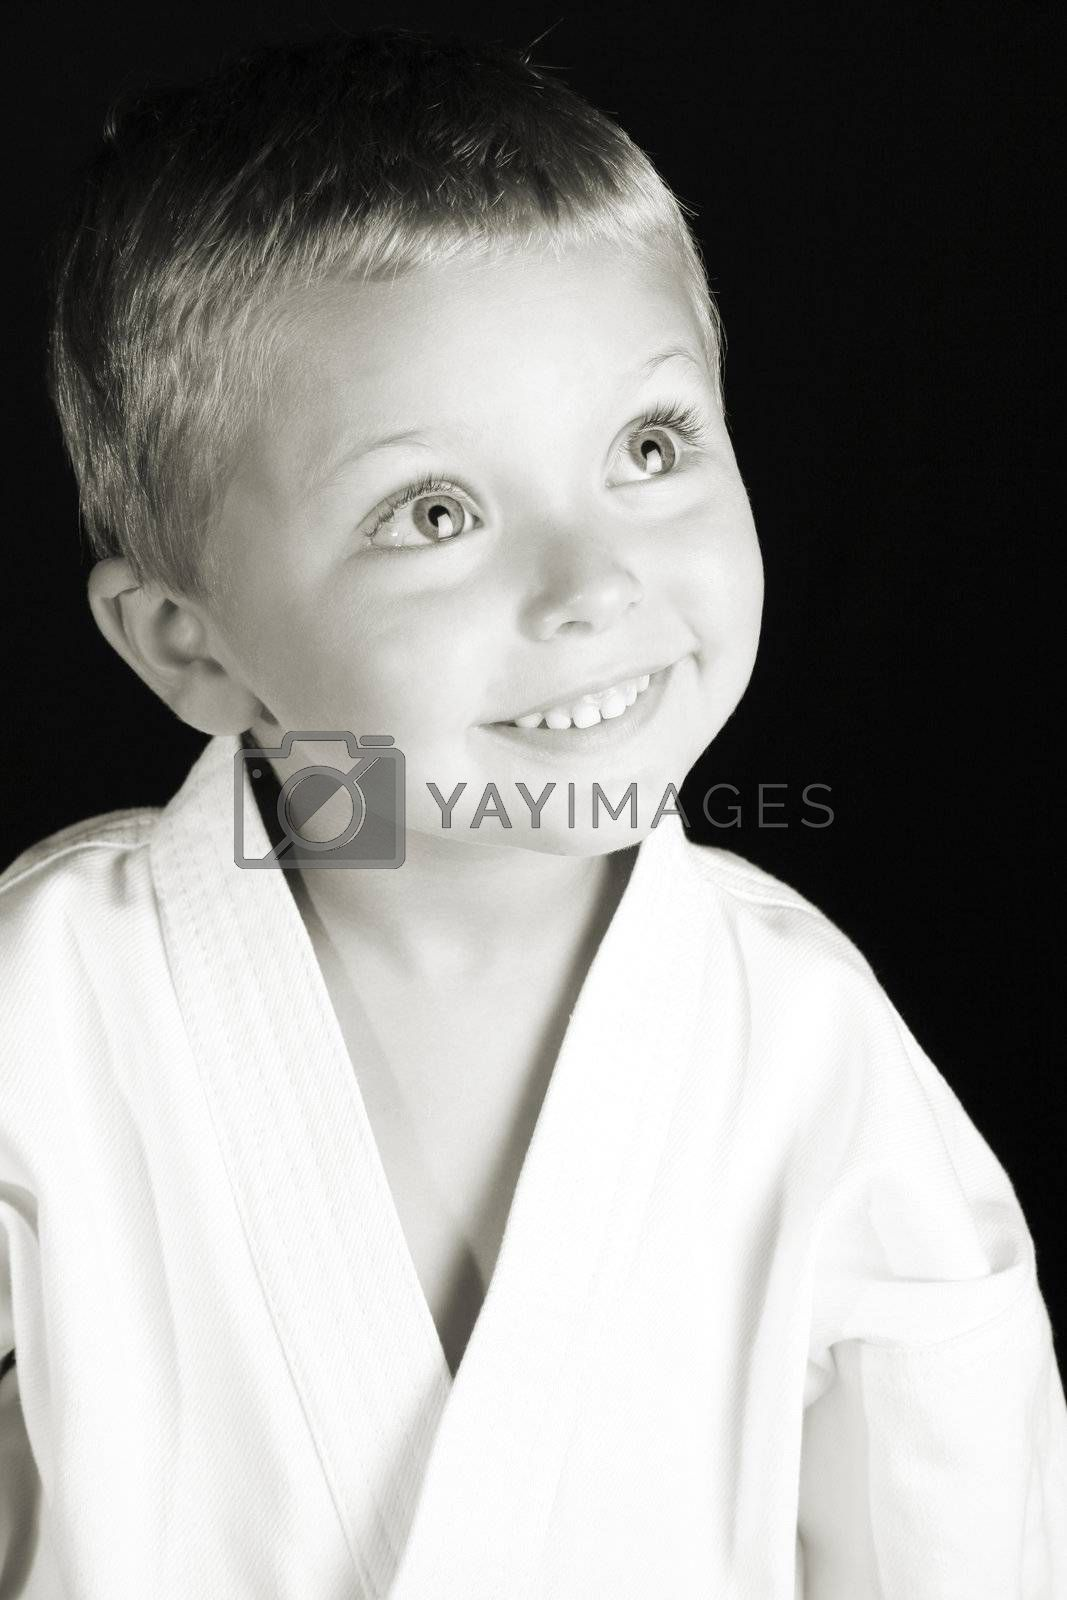 Young boy wearing his karate uniform on a black background